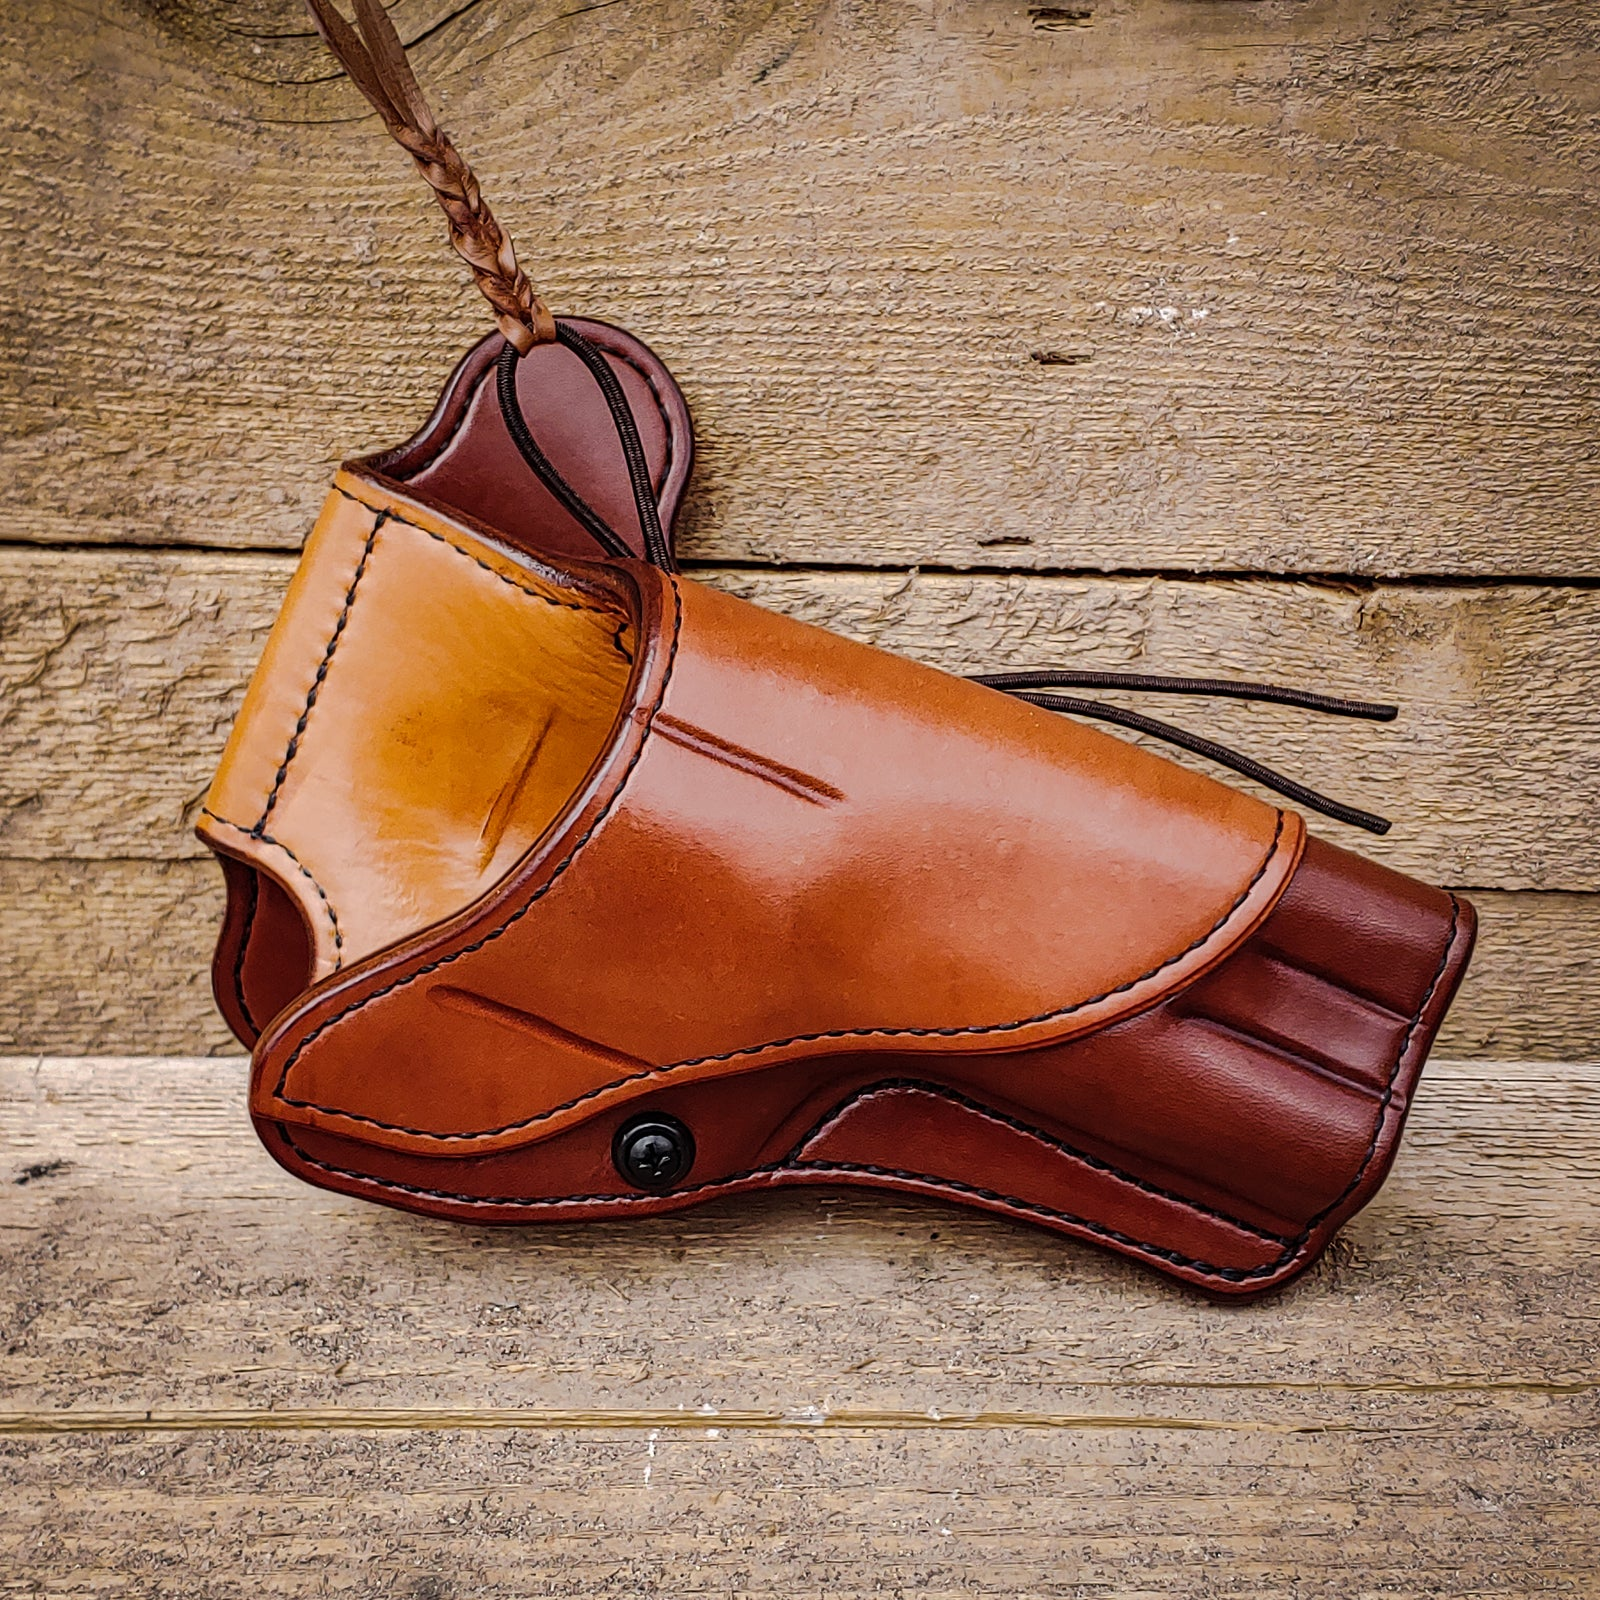 Outdoorsman Holster